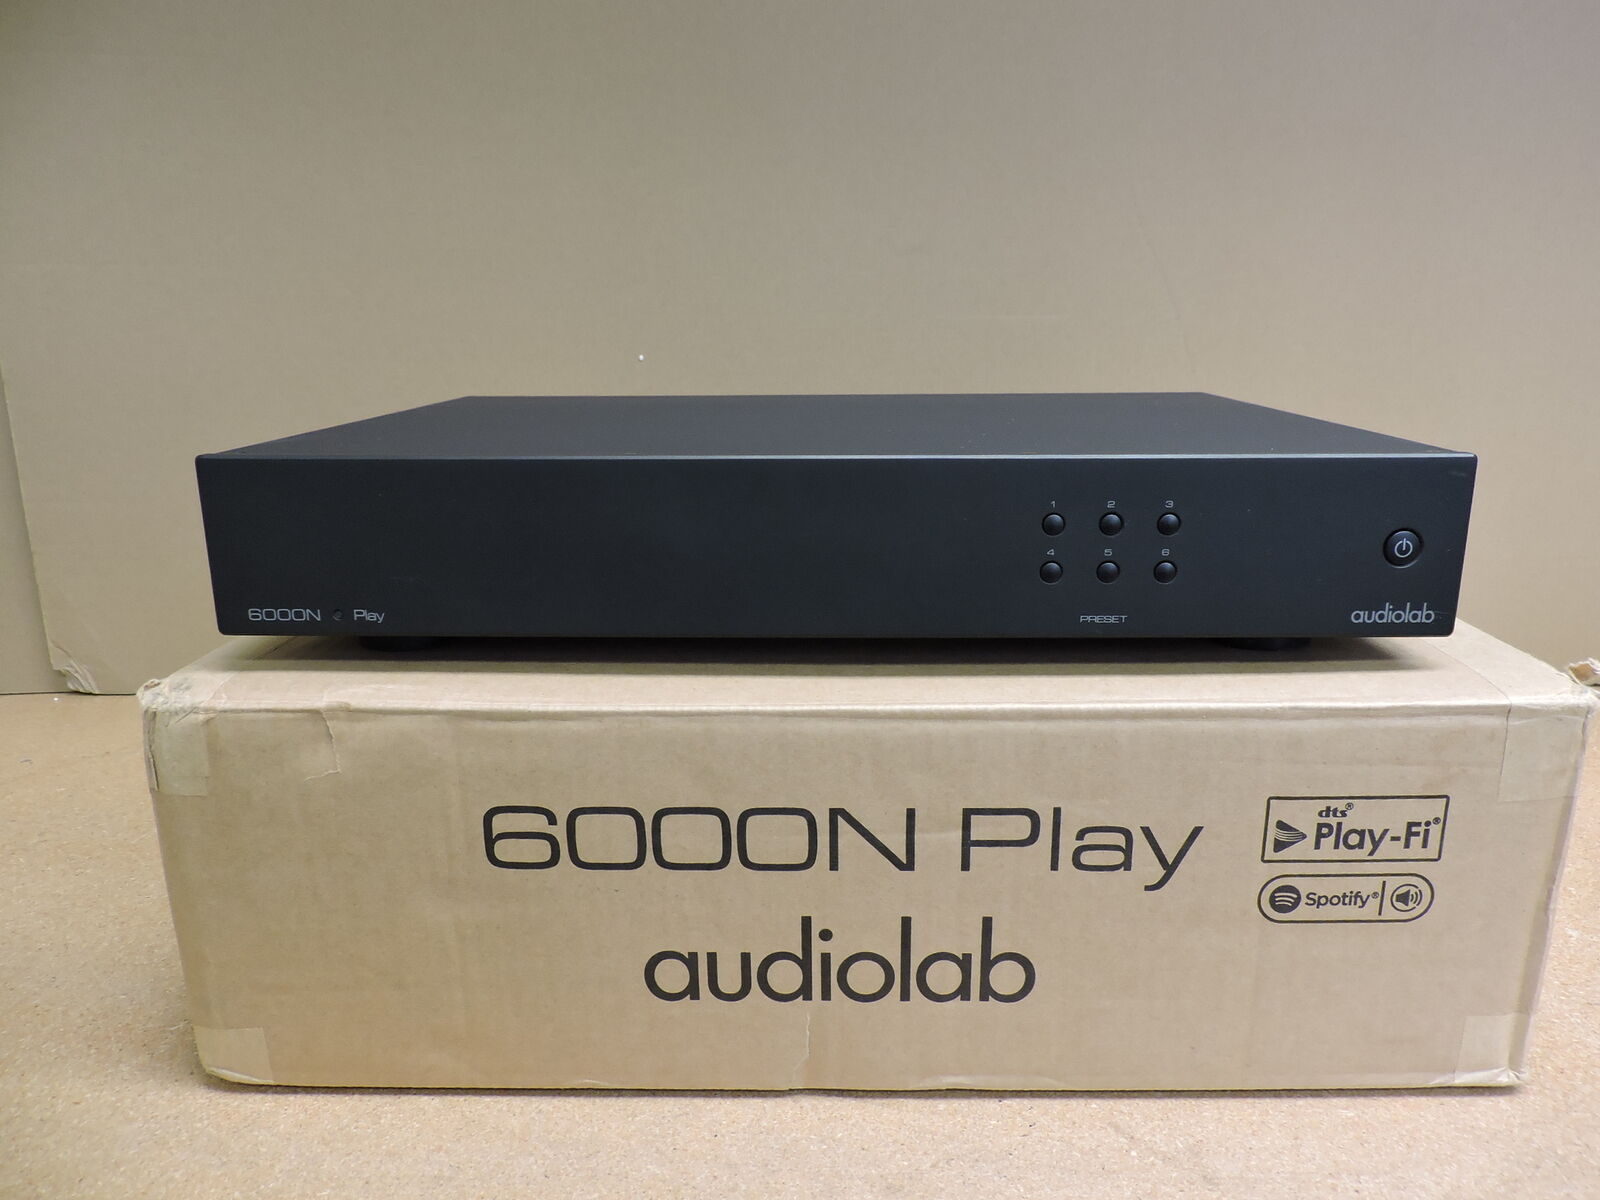 Audiolab 6000N Play Wireless Streaming Player (Black) 6000n audiolab play player streaming wireless